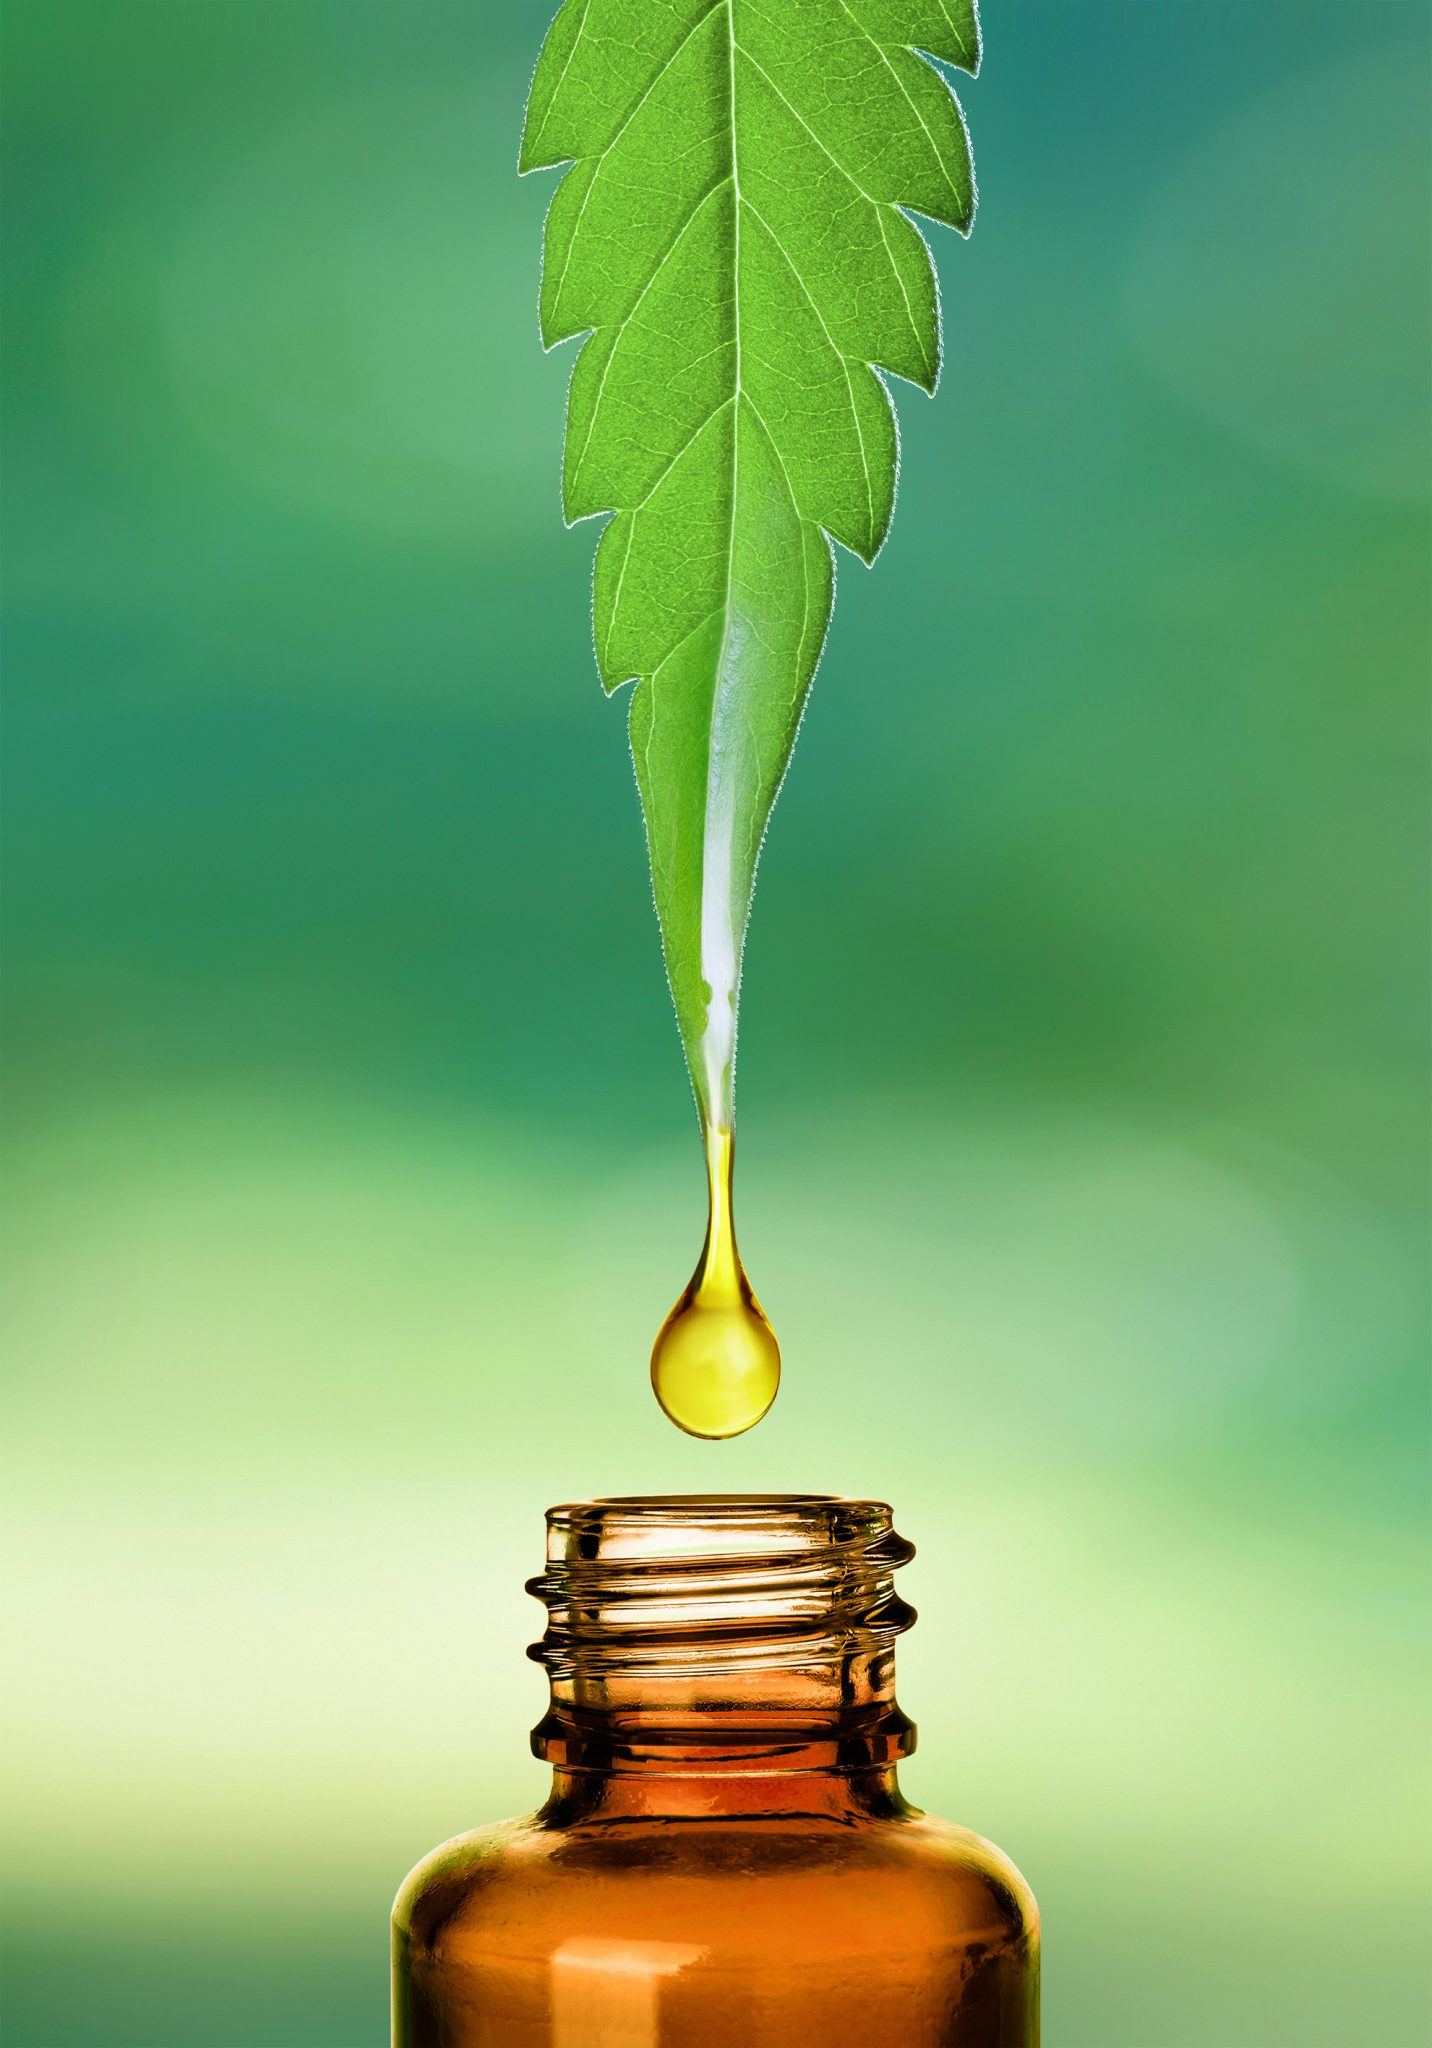 use and effectiveness of cbd cannabidiol oil jeffrey sterling md